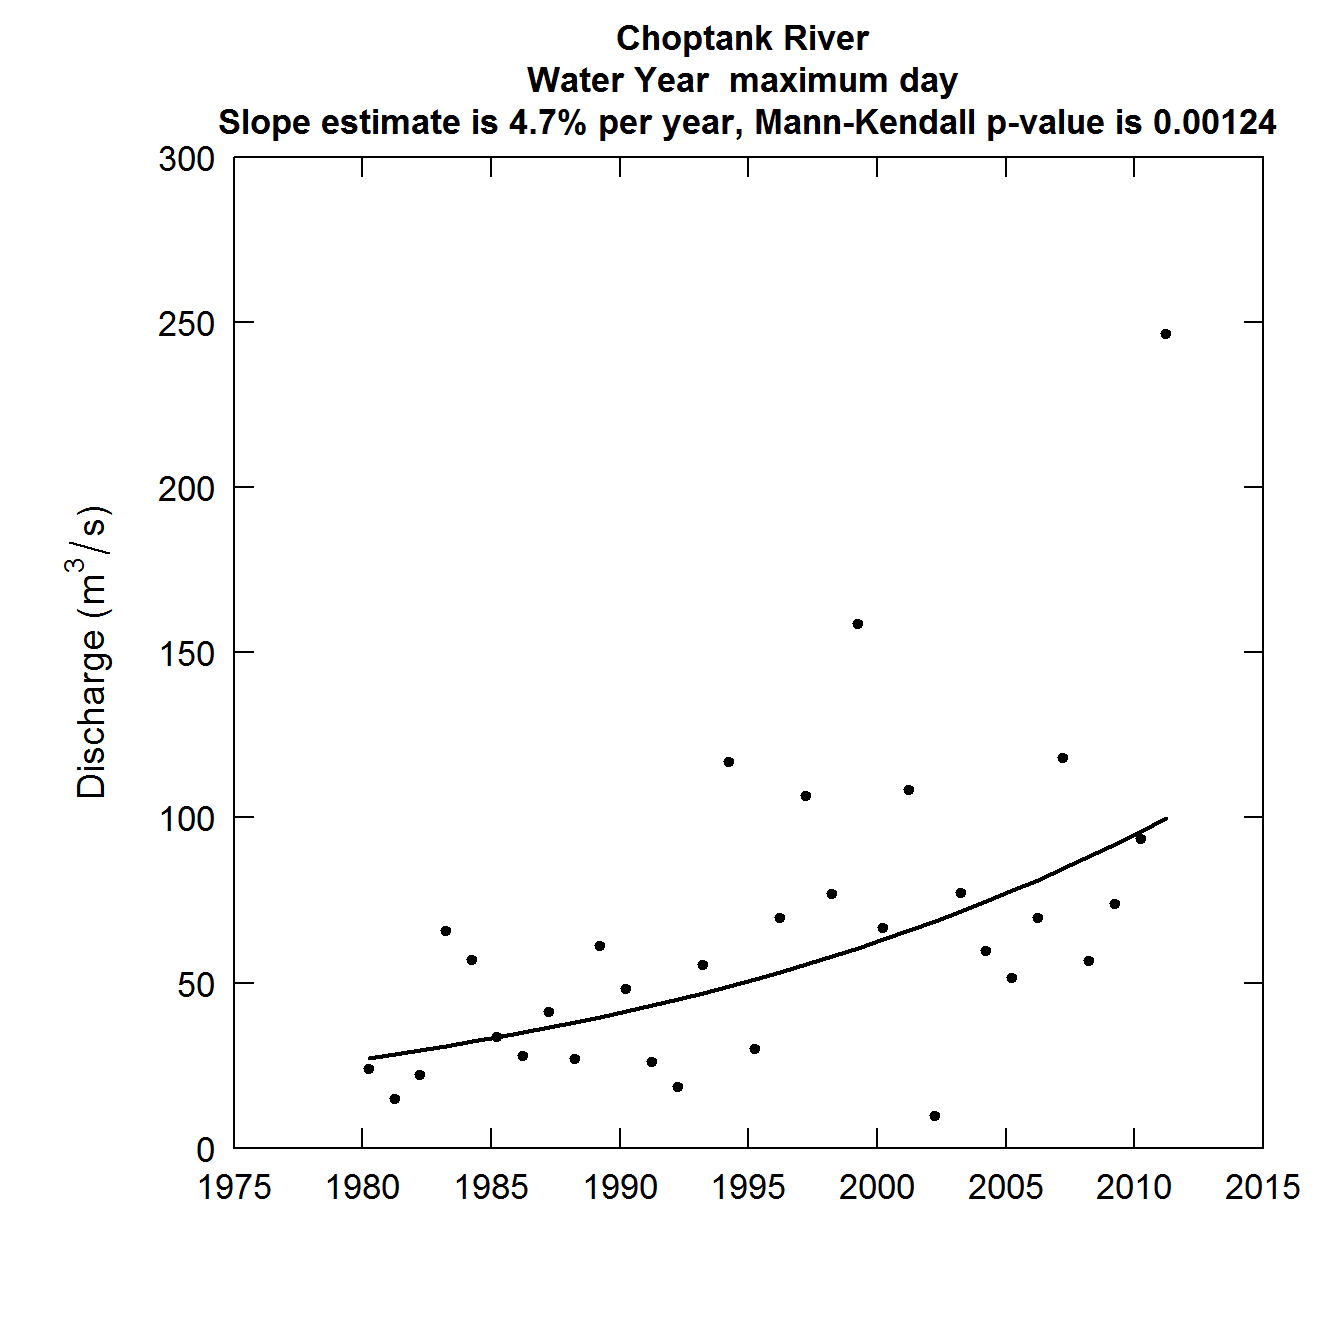 Discharge as a function of Year annual maximum day